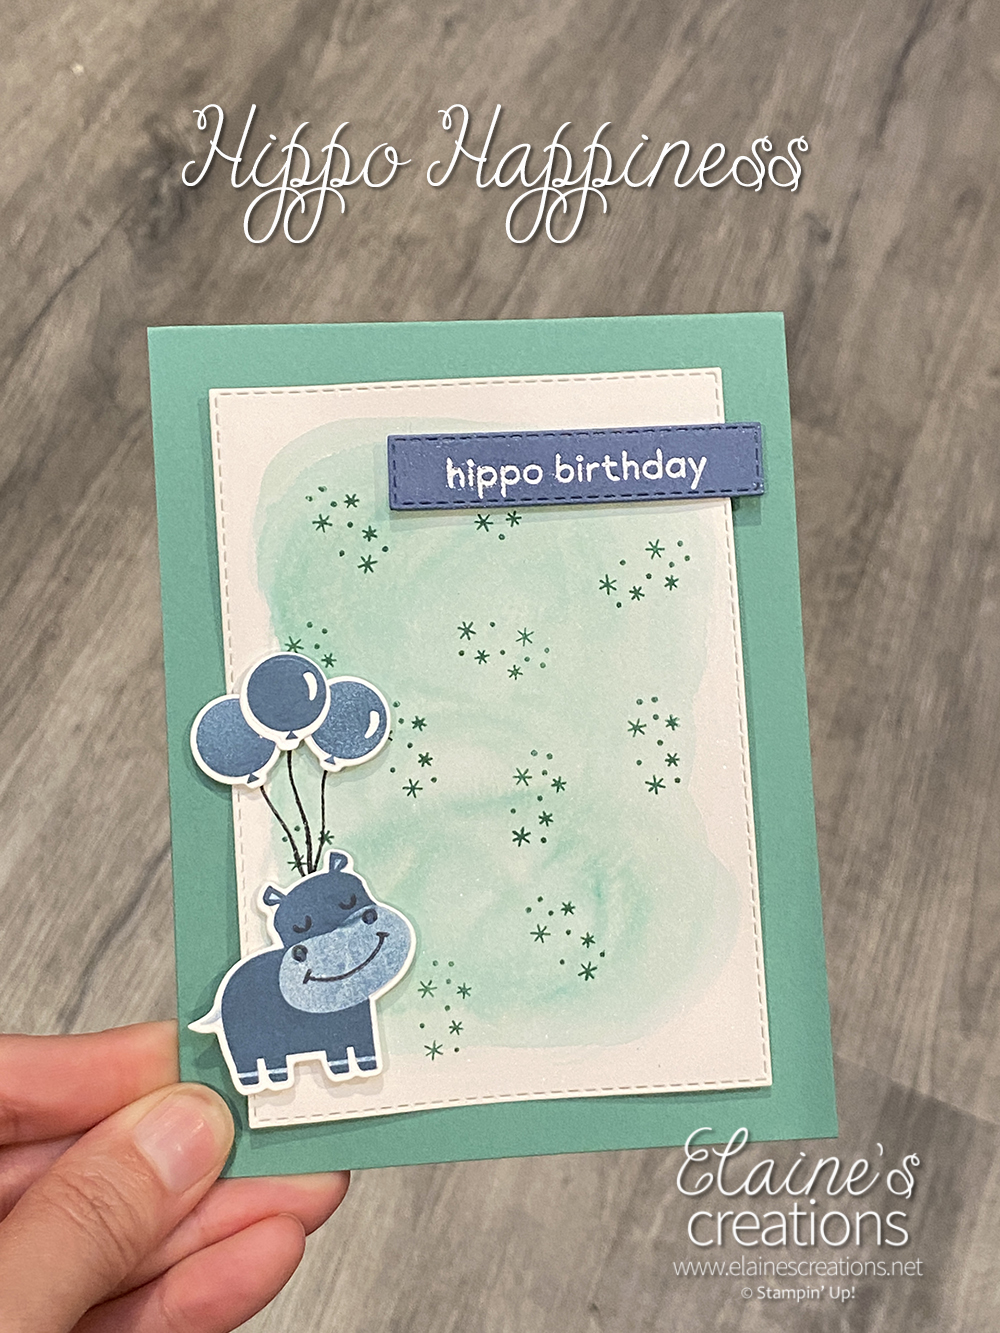 hippo happiness card